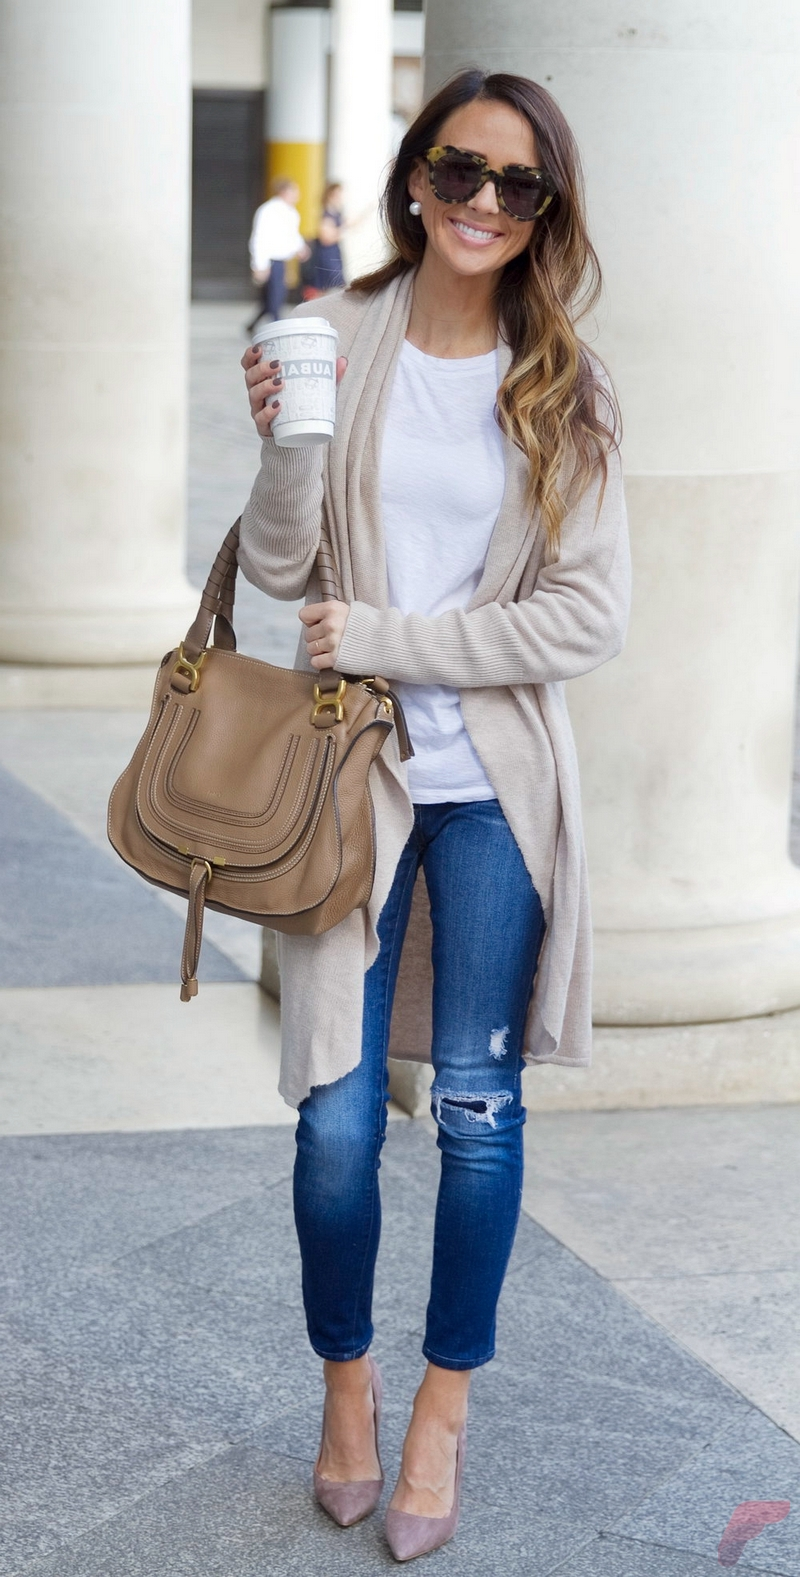 Women cardigan outfit (112)